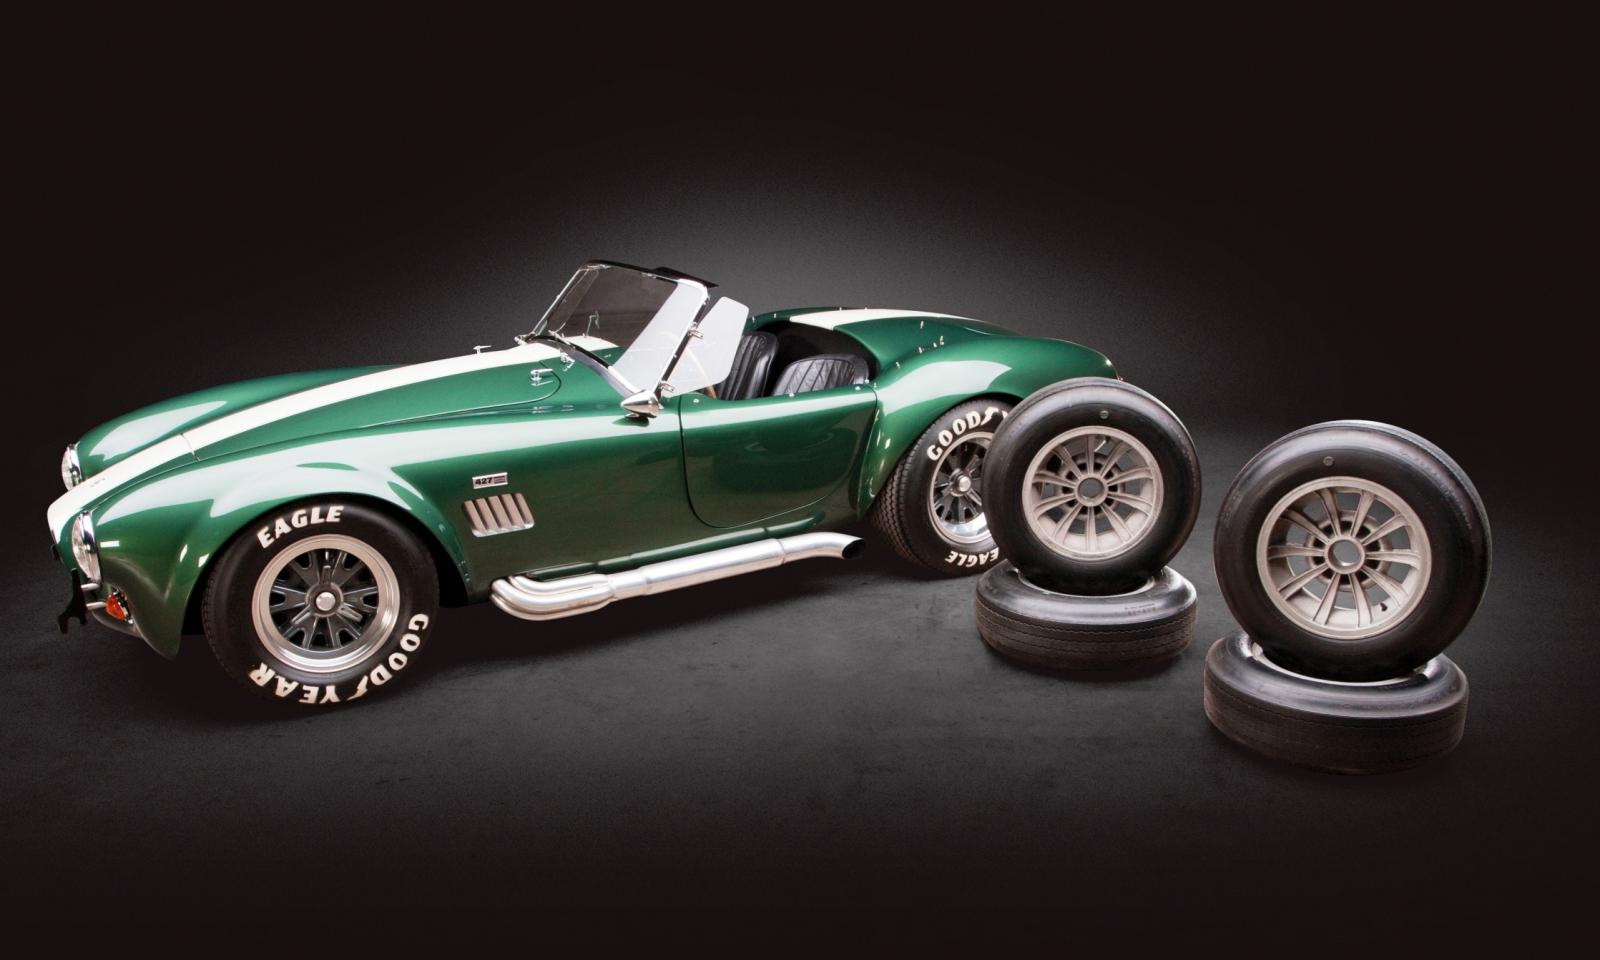 Rm Dallas Preview - ORIGINAL 1967 Shelby 427 Cobra Estimated at $1MM+ 14